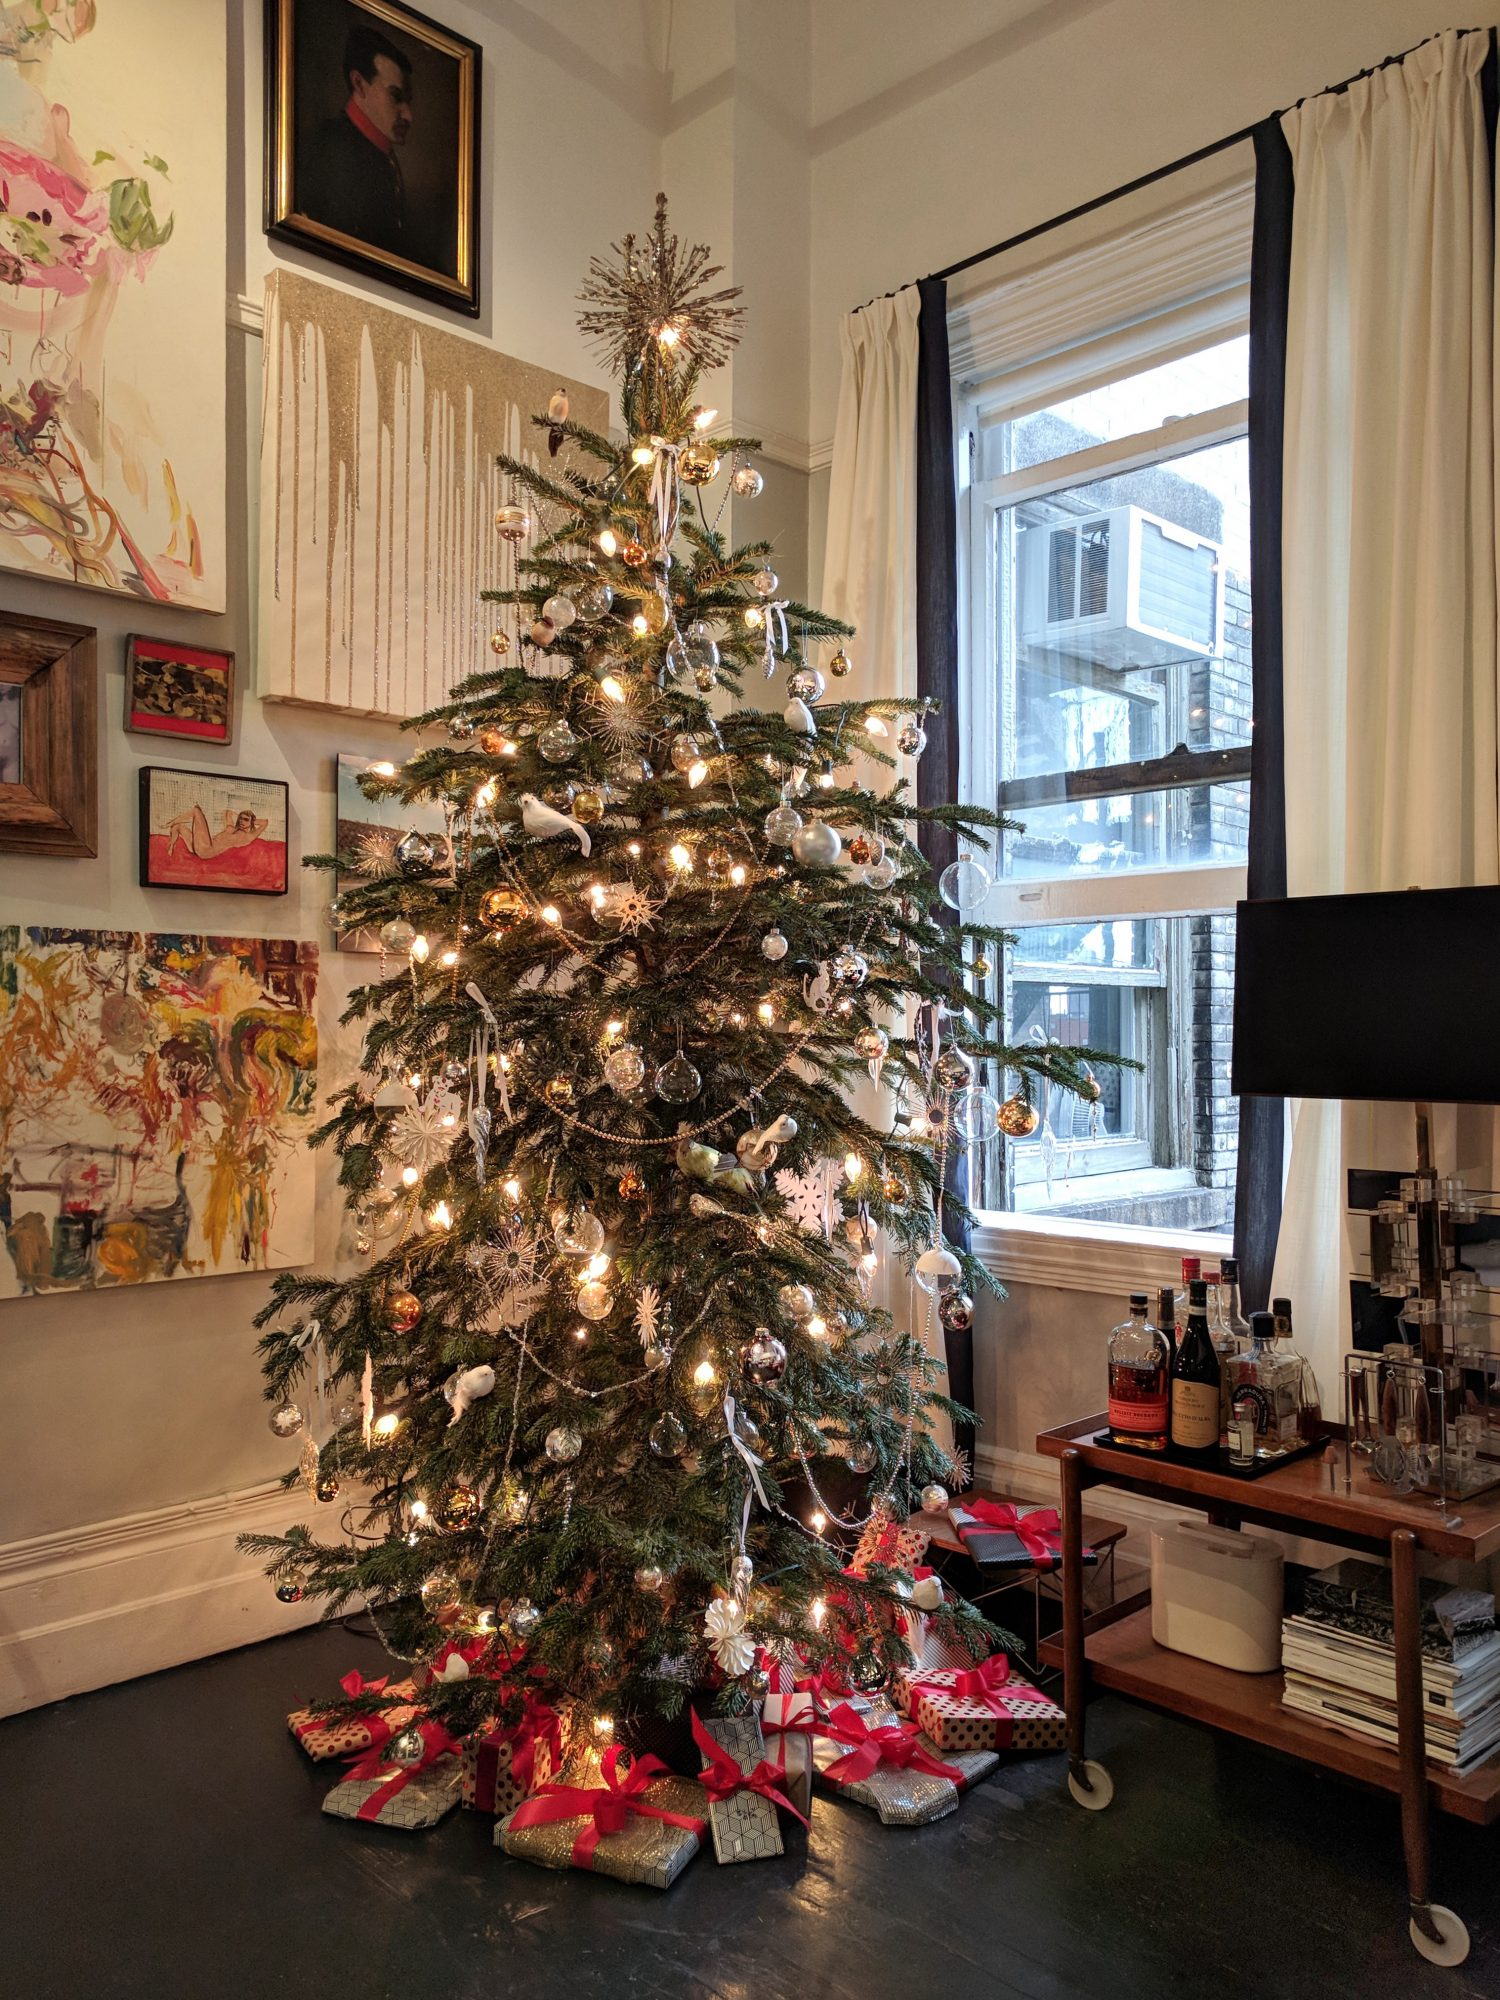 Christmas tree with silver presents